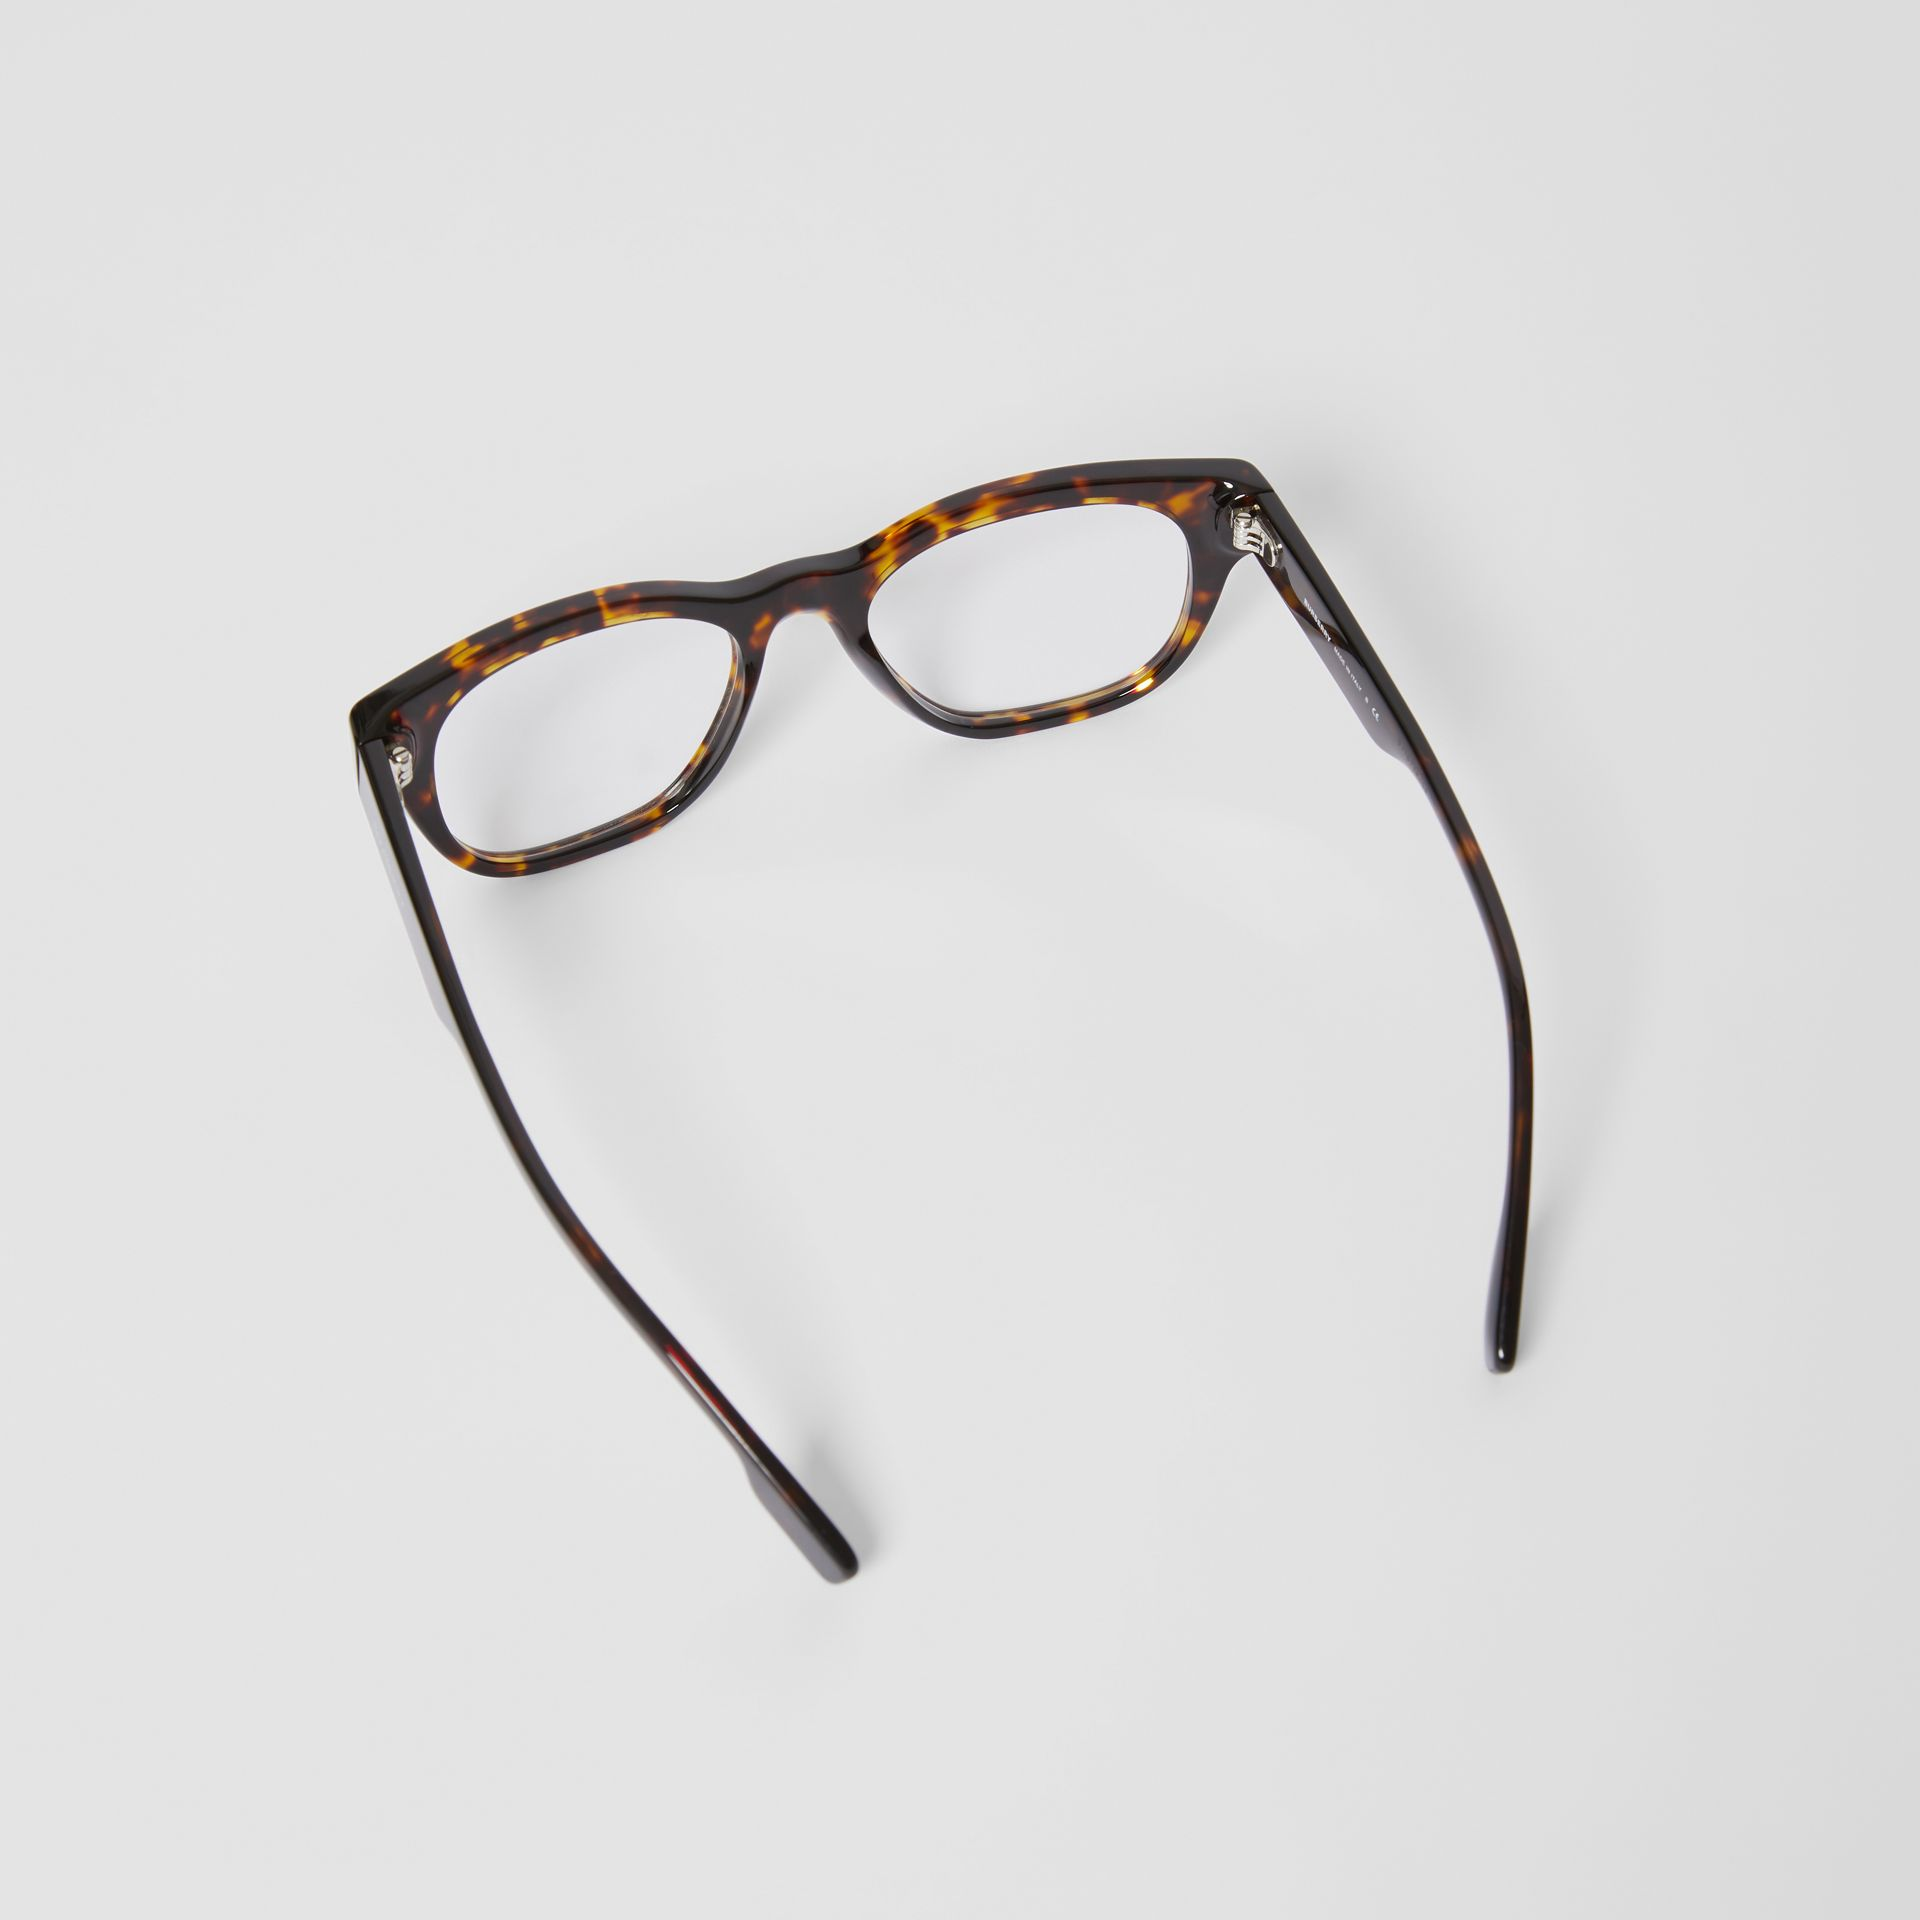 Square Optical Frames in Tortoiseshell - Men | Burberry Australia - gallery image 4